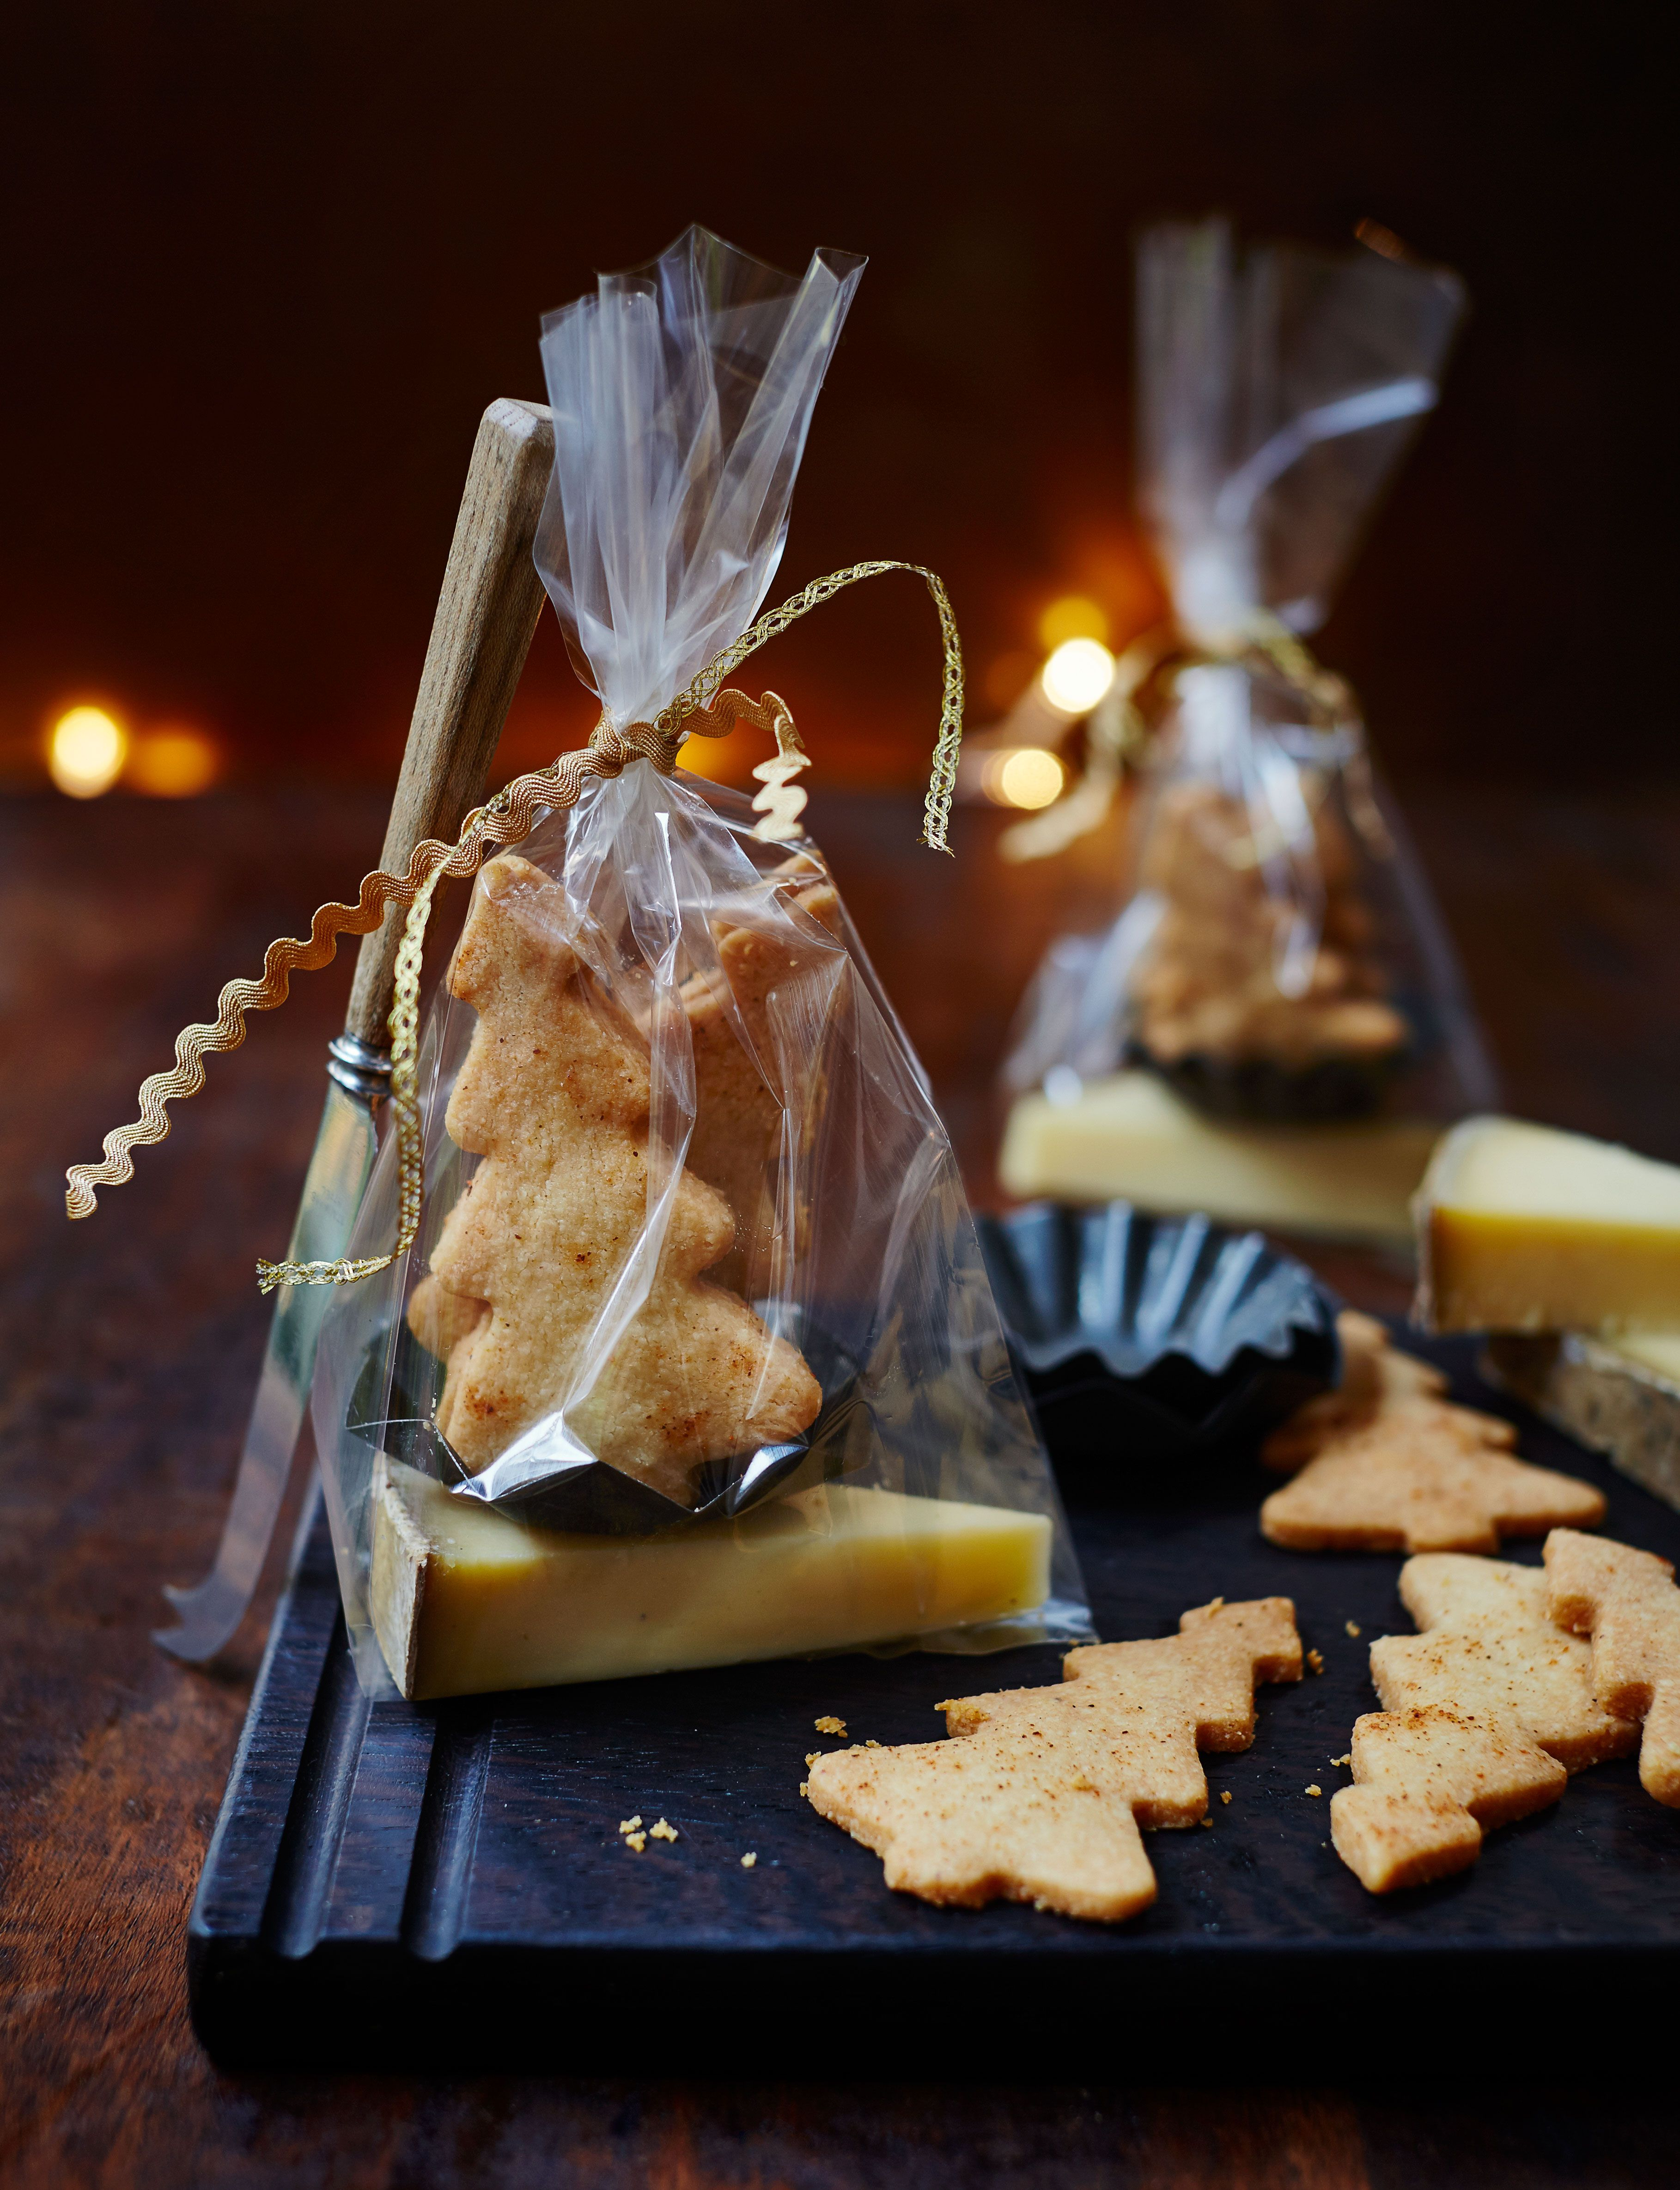 Parmesan shortbreads   Recipe (With images)   Food, Edible ...